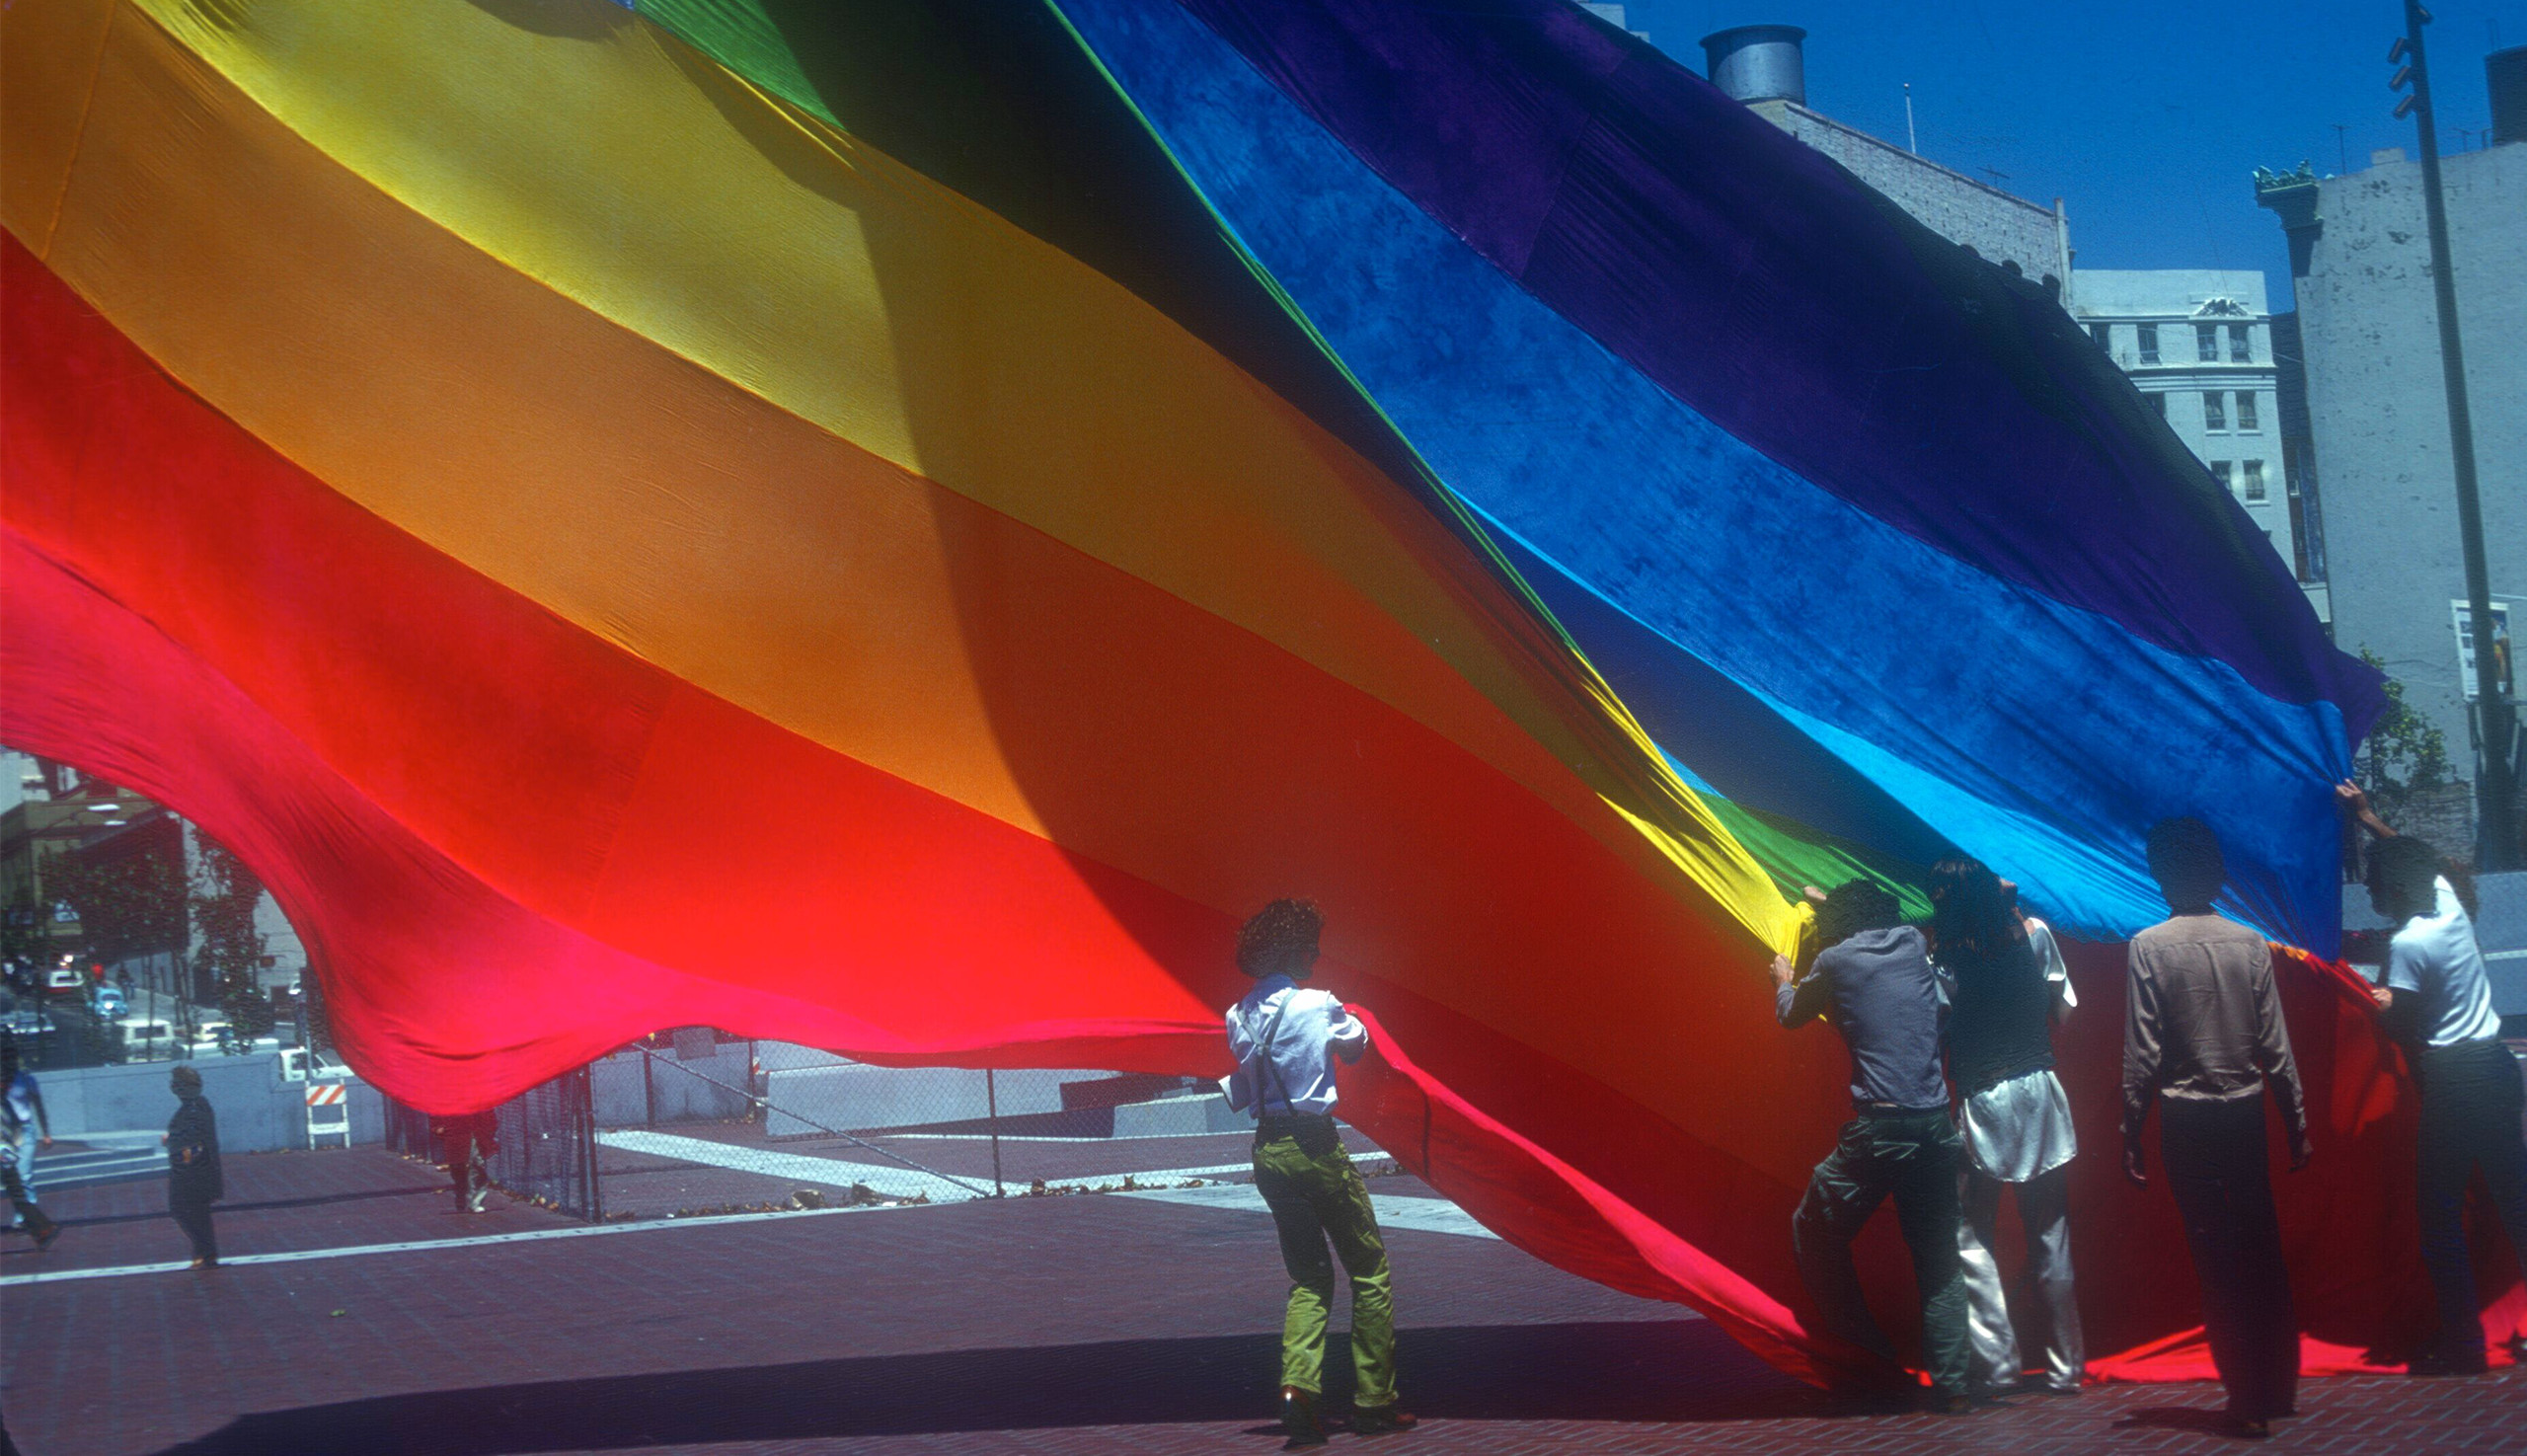 Gilbert Baker and volunteers raising the original Pride flag in San Francisco's United Nations Plaza in 1978